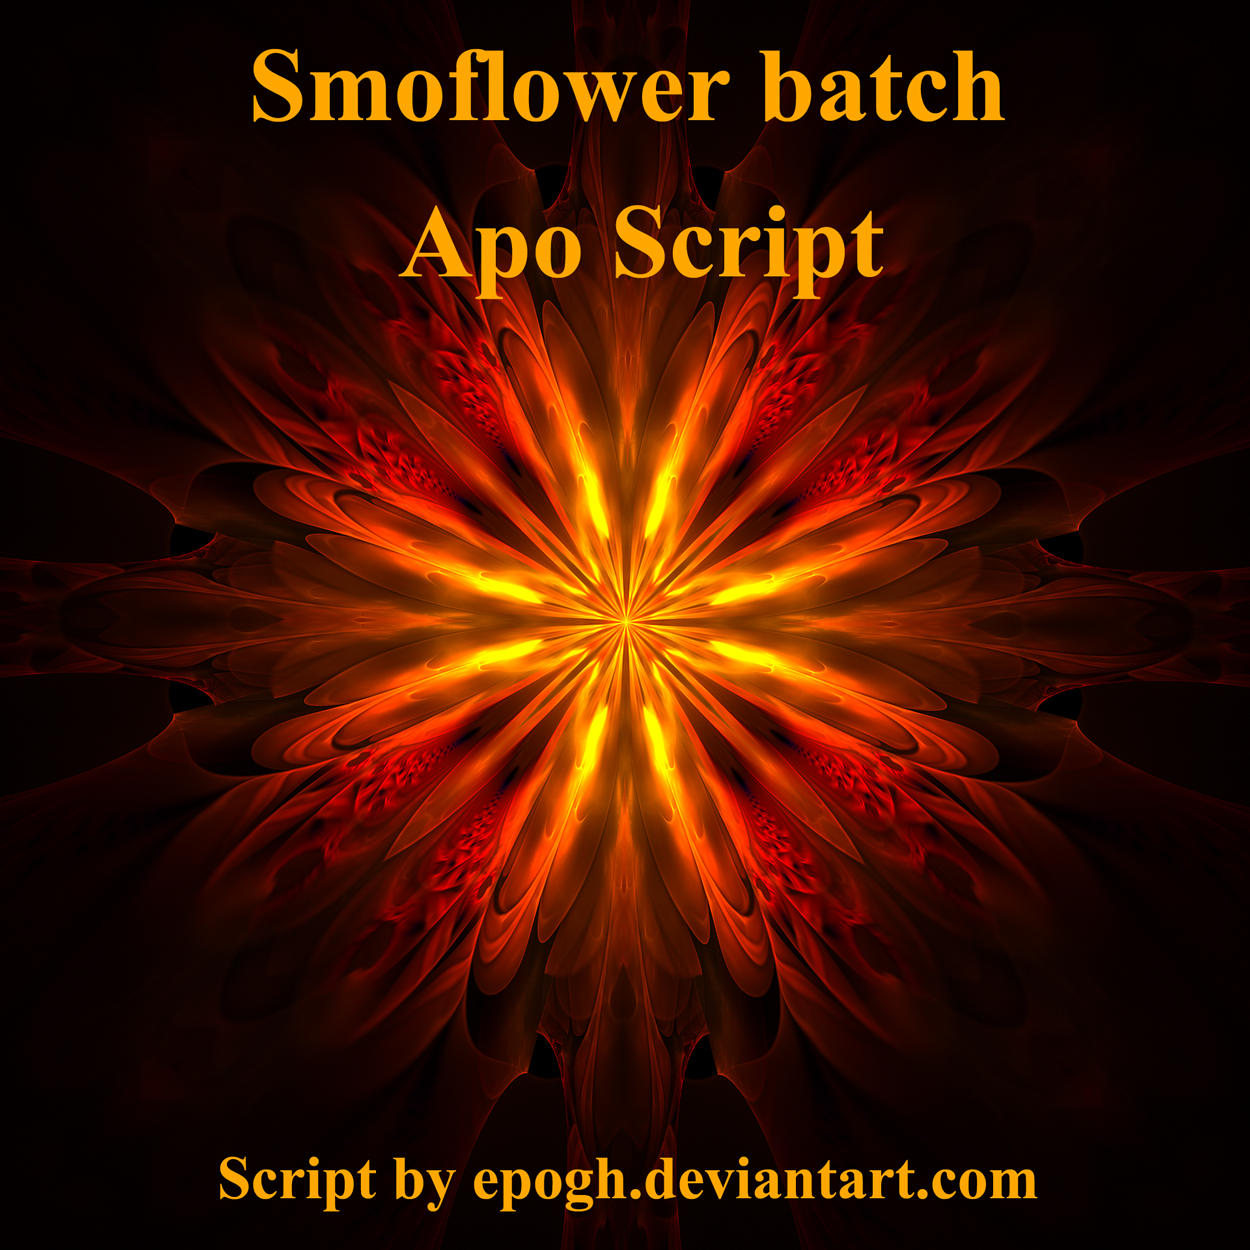 Smoflower Apo script by Epogh